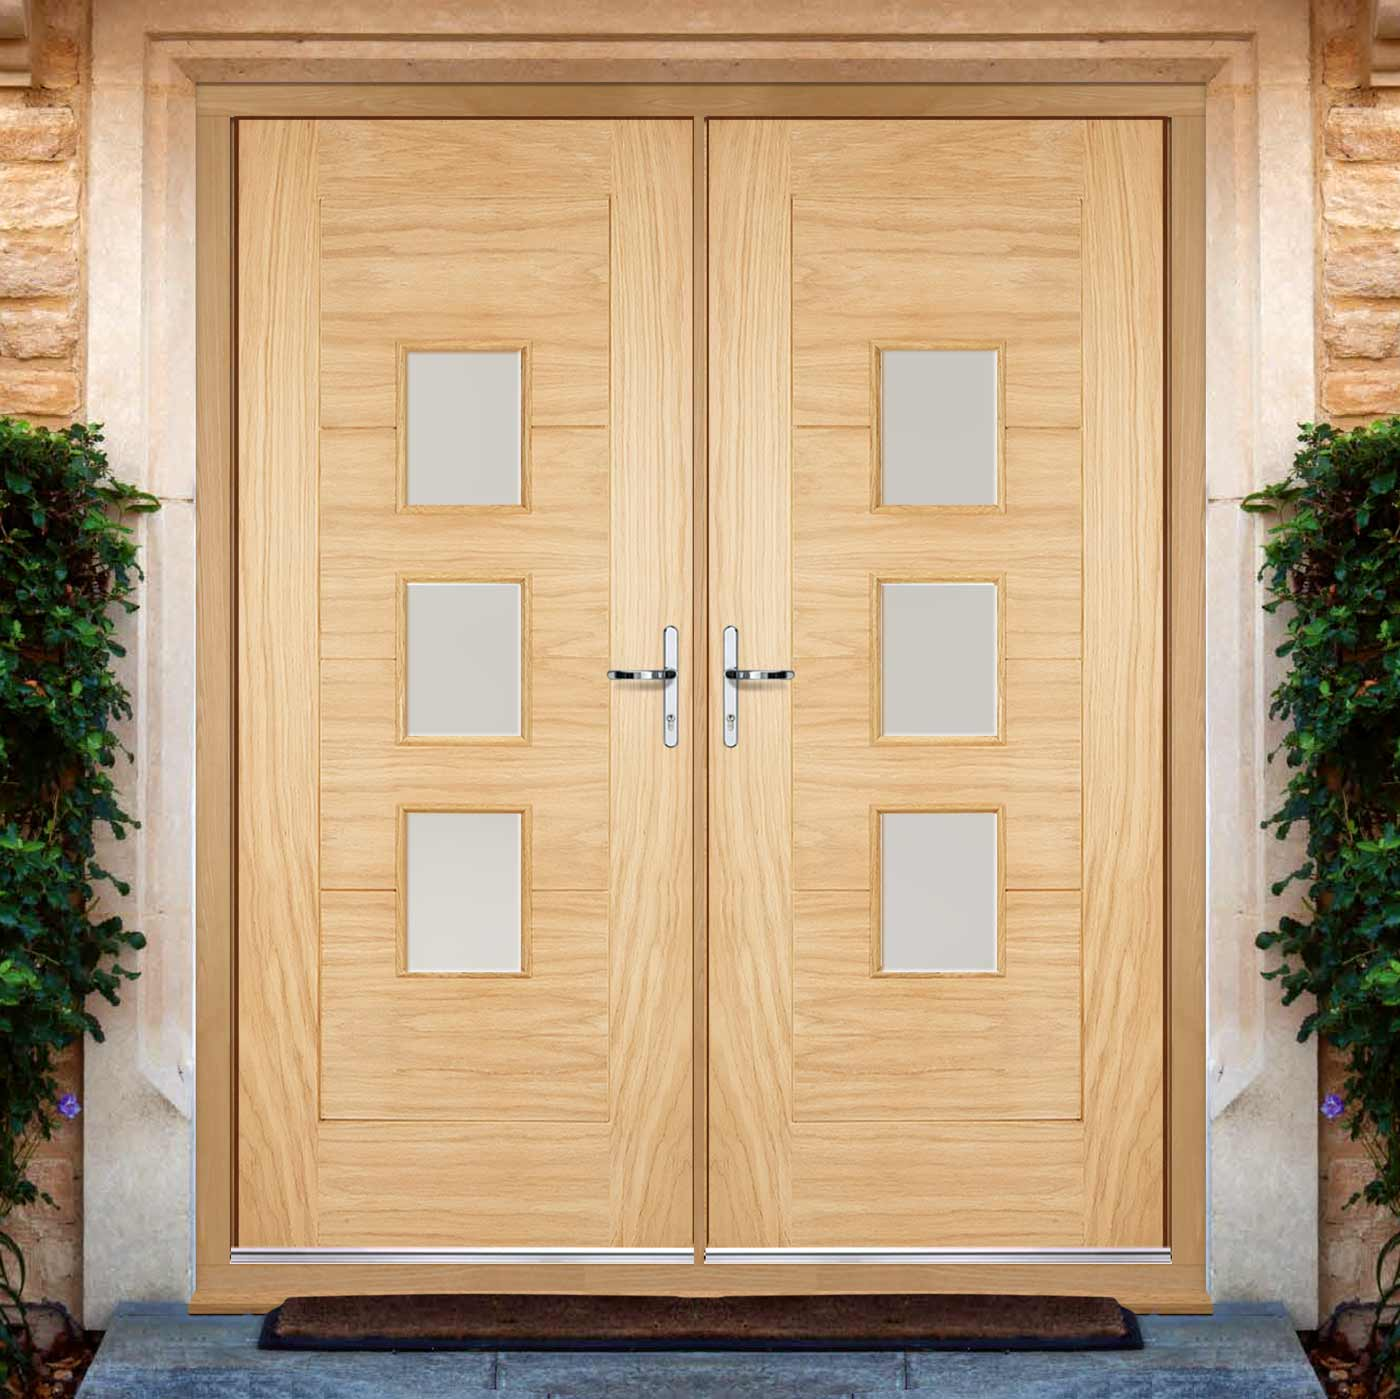 Part L Compliant Arta External Oak Double Door and Frame Set - Frosted Double Glazing - Warmerdoor Style